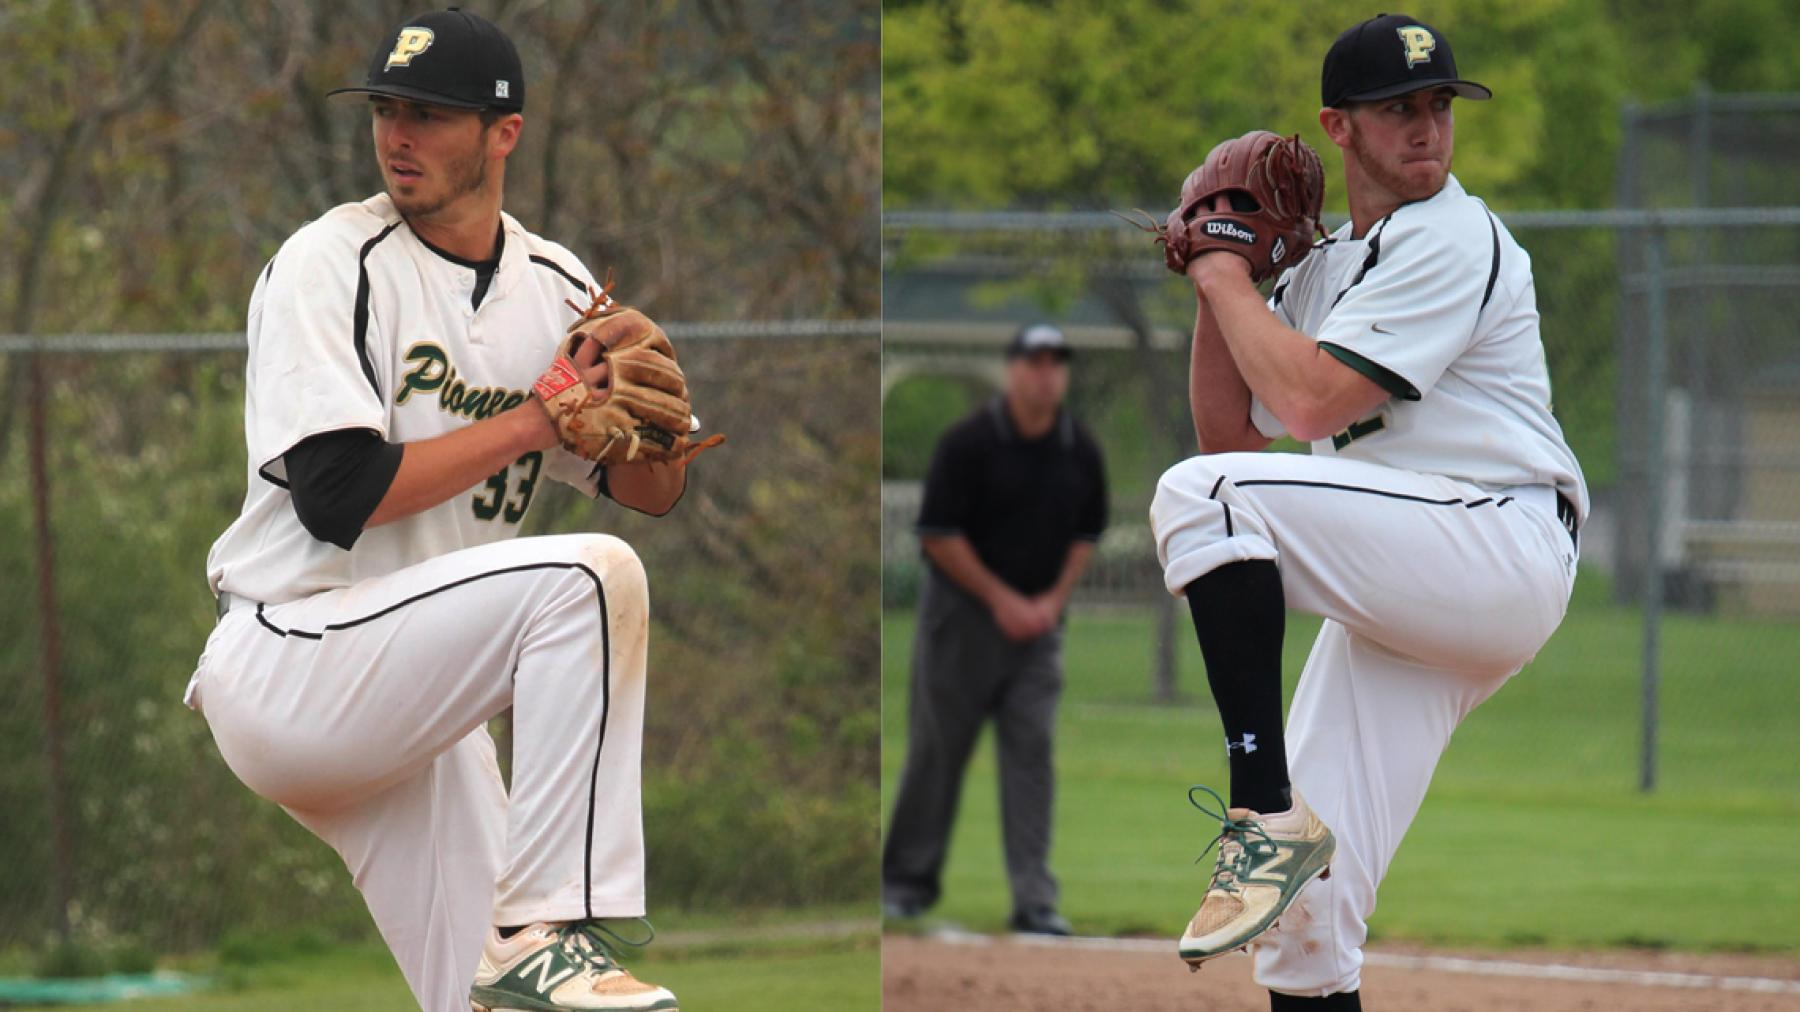 @PPUBaseball players earn academic honors from #NAIA, #RSC